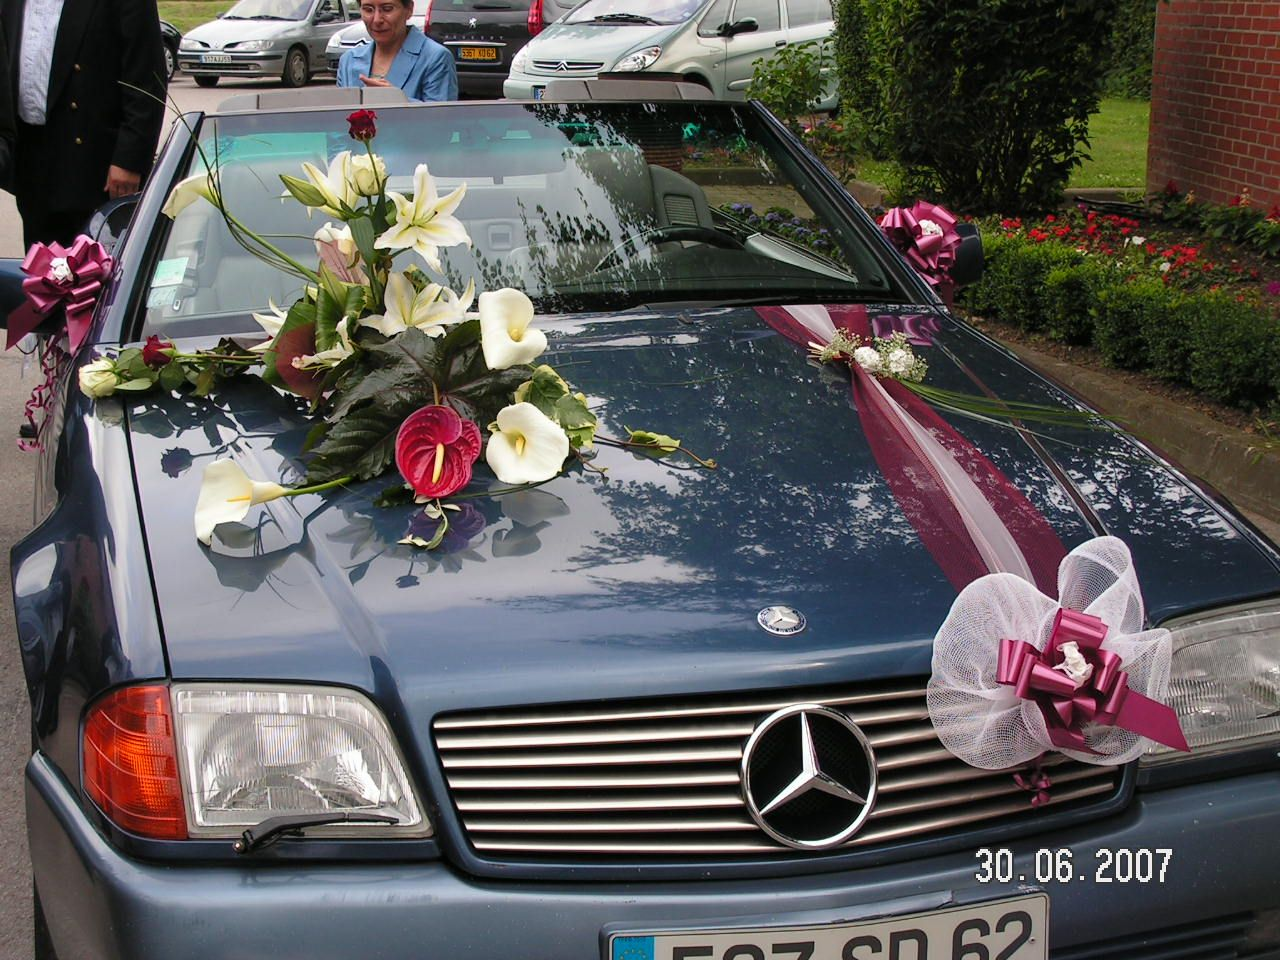 Decoration Mariage Voiture Tulle Decoration Mariage Voiture Bb D Coration Des Voitures De